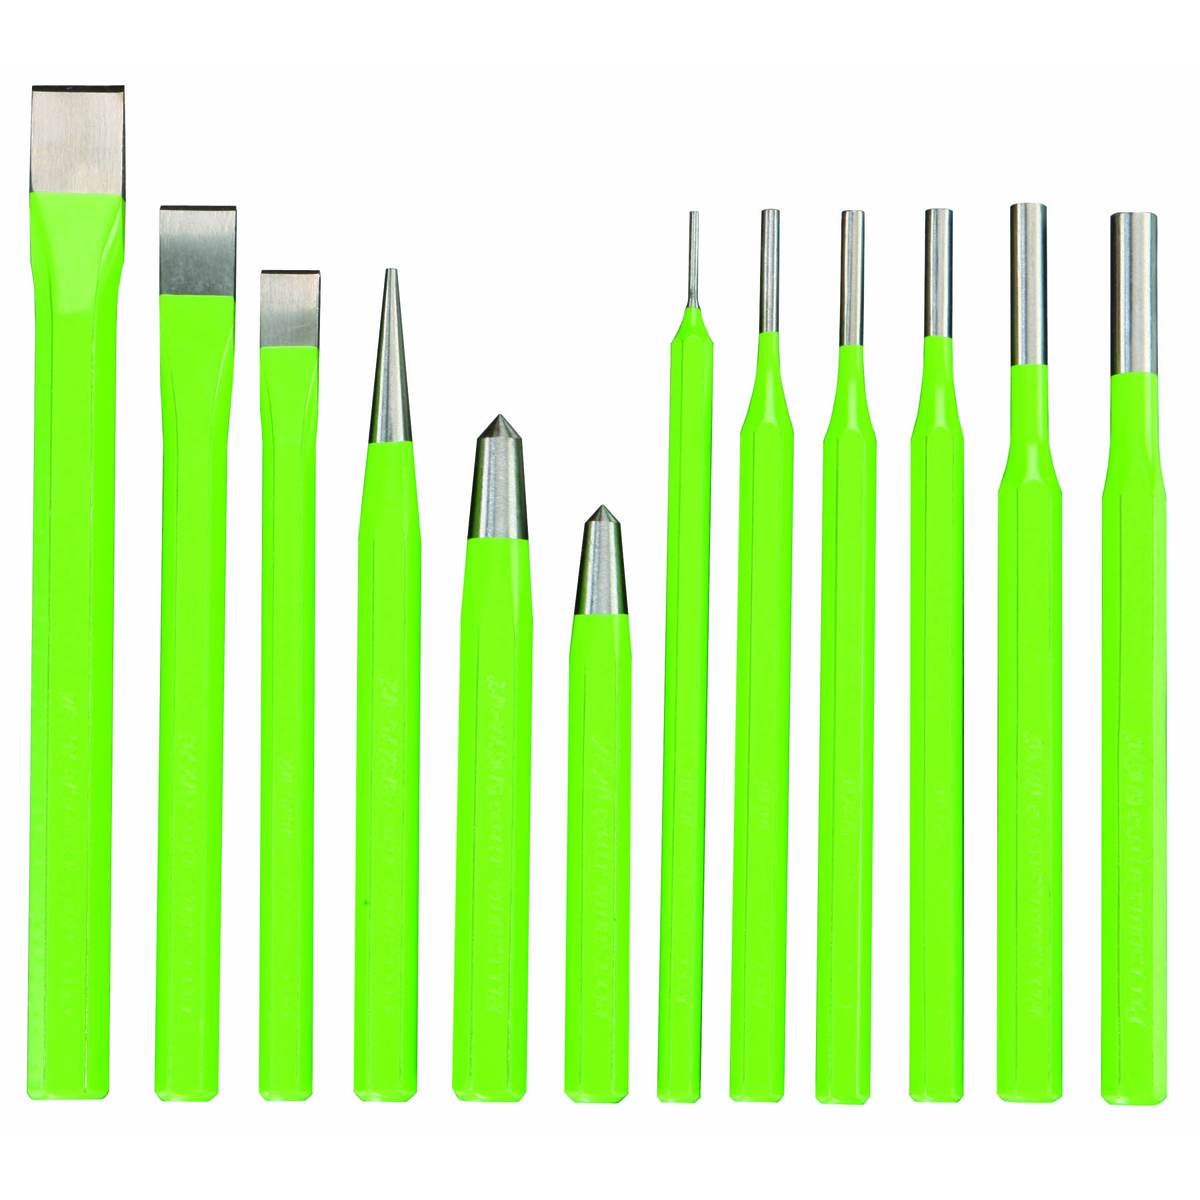 12 Piece Cold Chisel And Punch Set